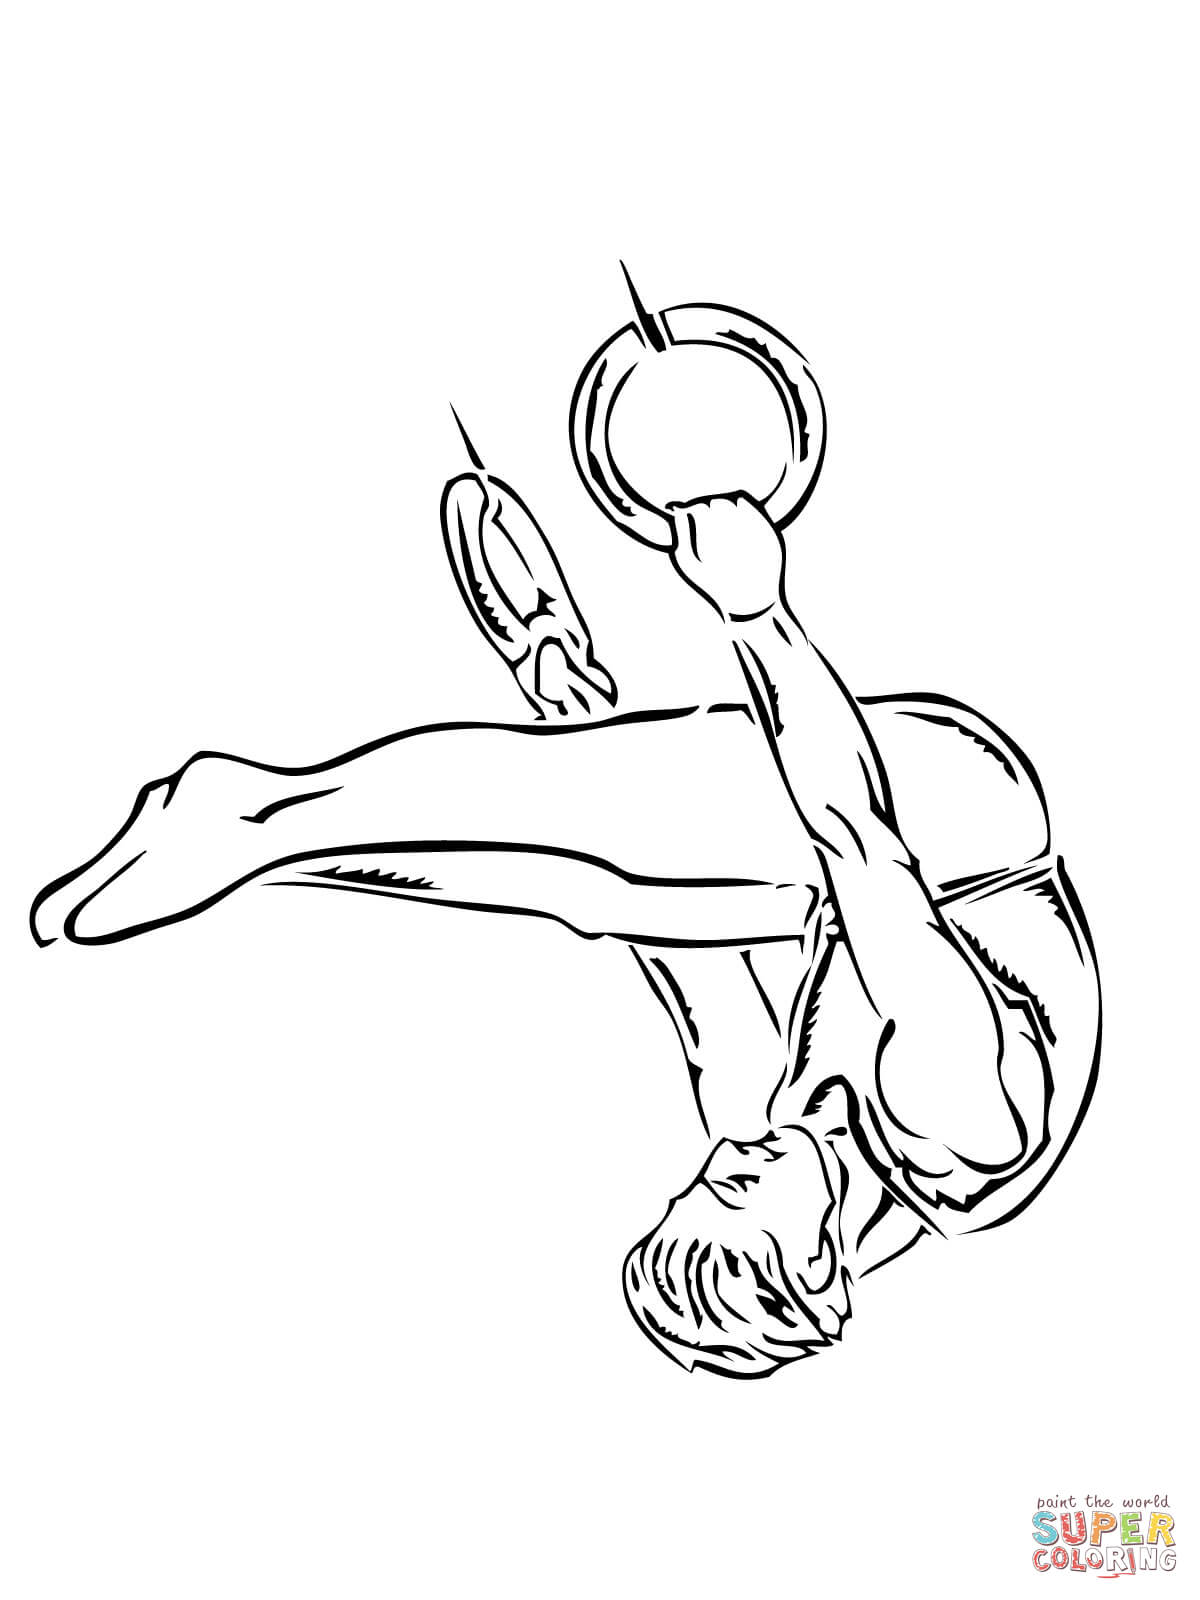 gymnastics coloring pages to print gymnastic ring performance coloring page free printable pages gymnastics coloring print to